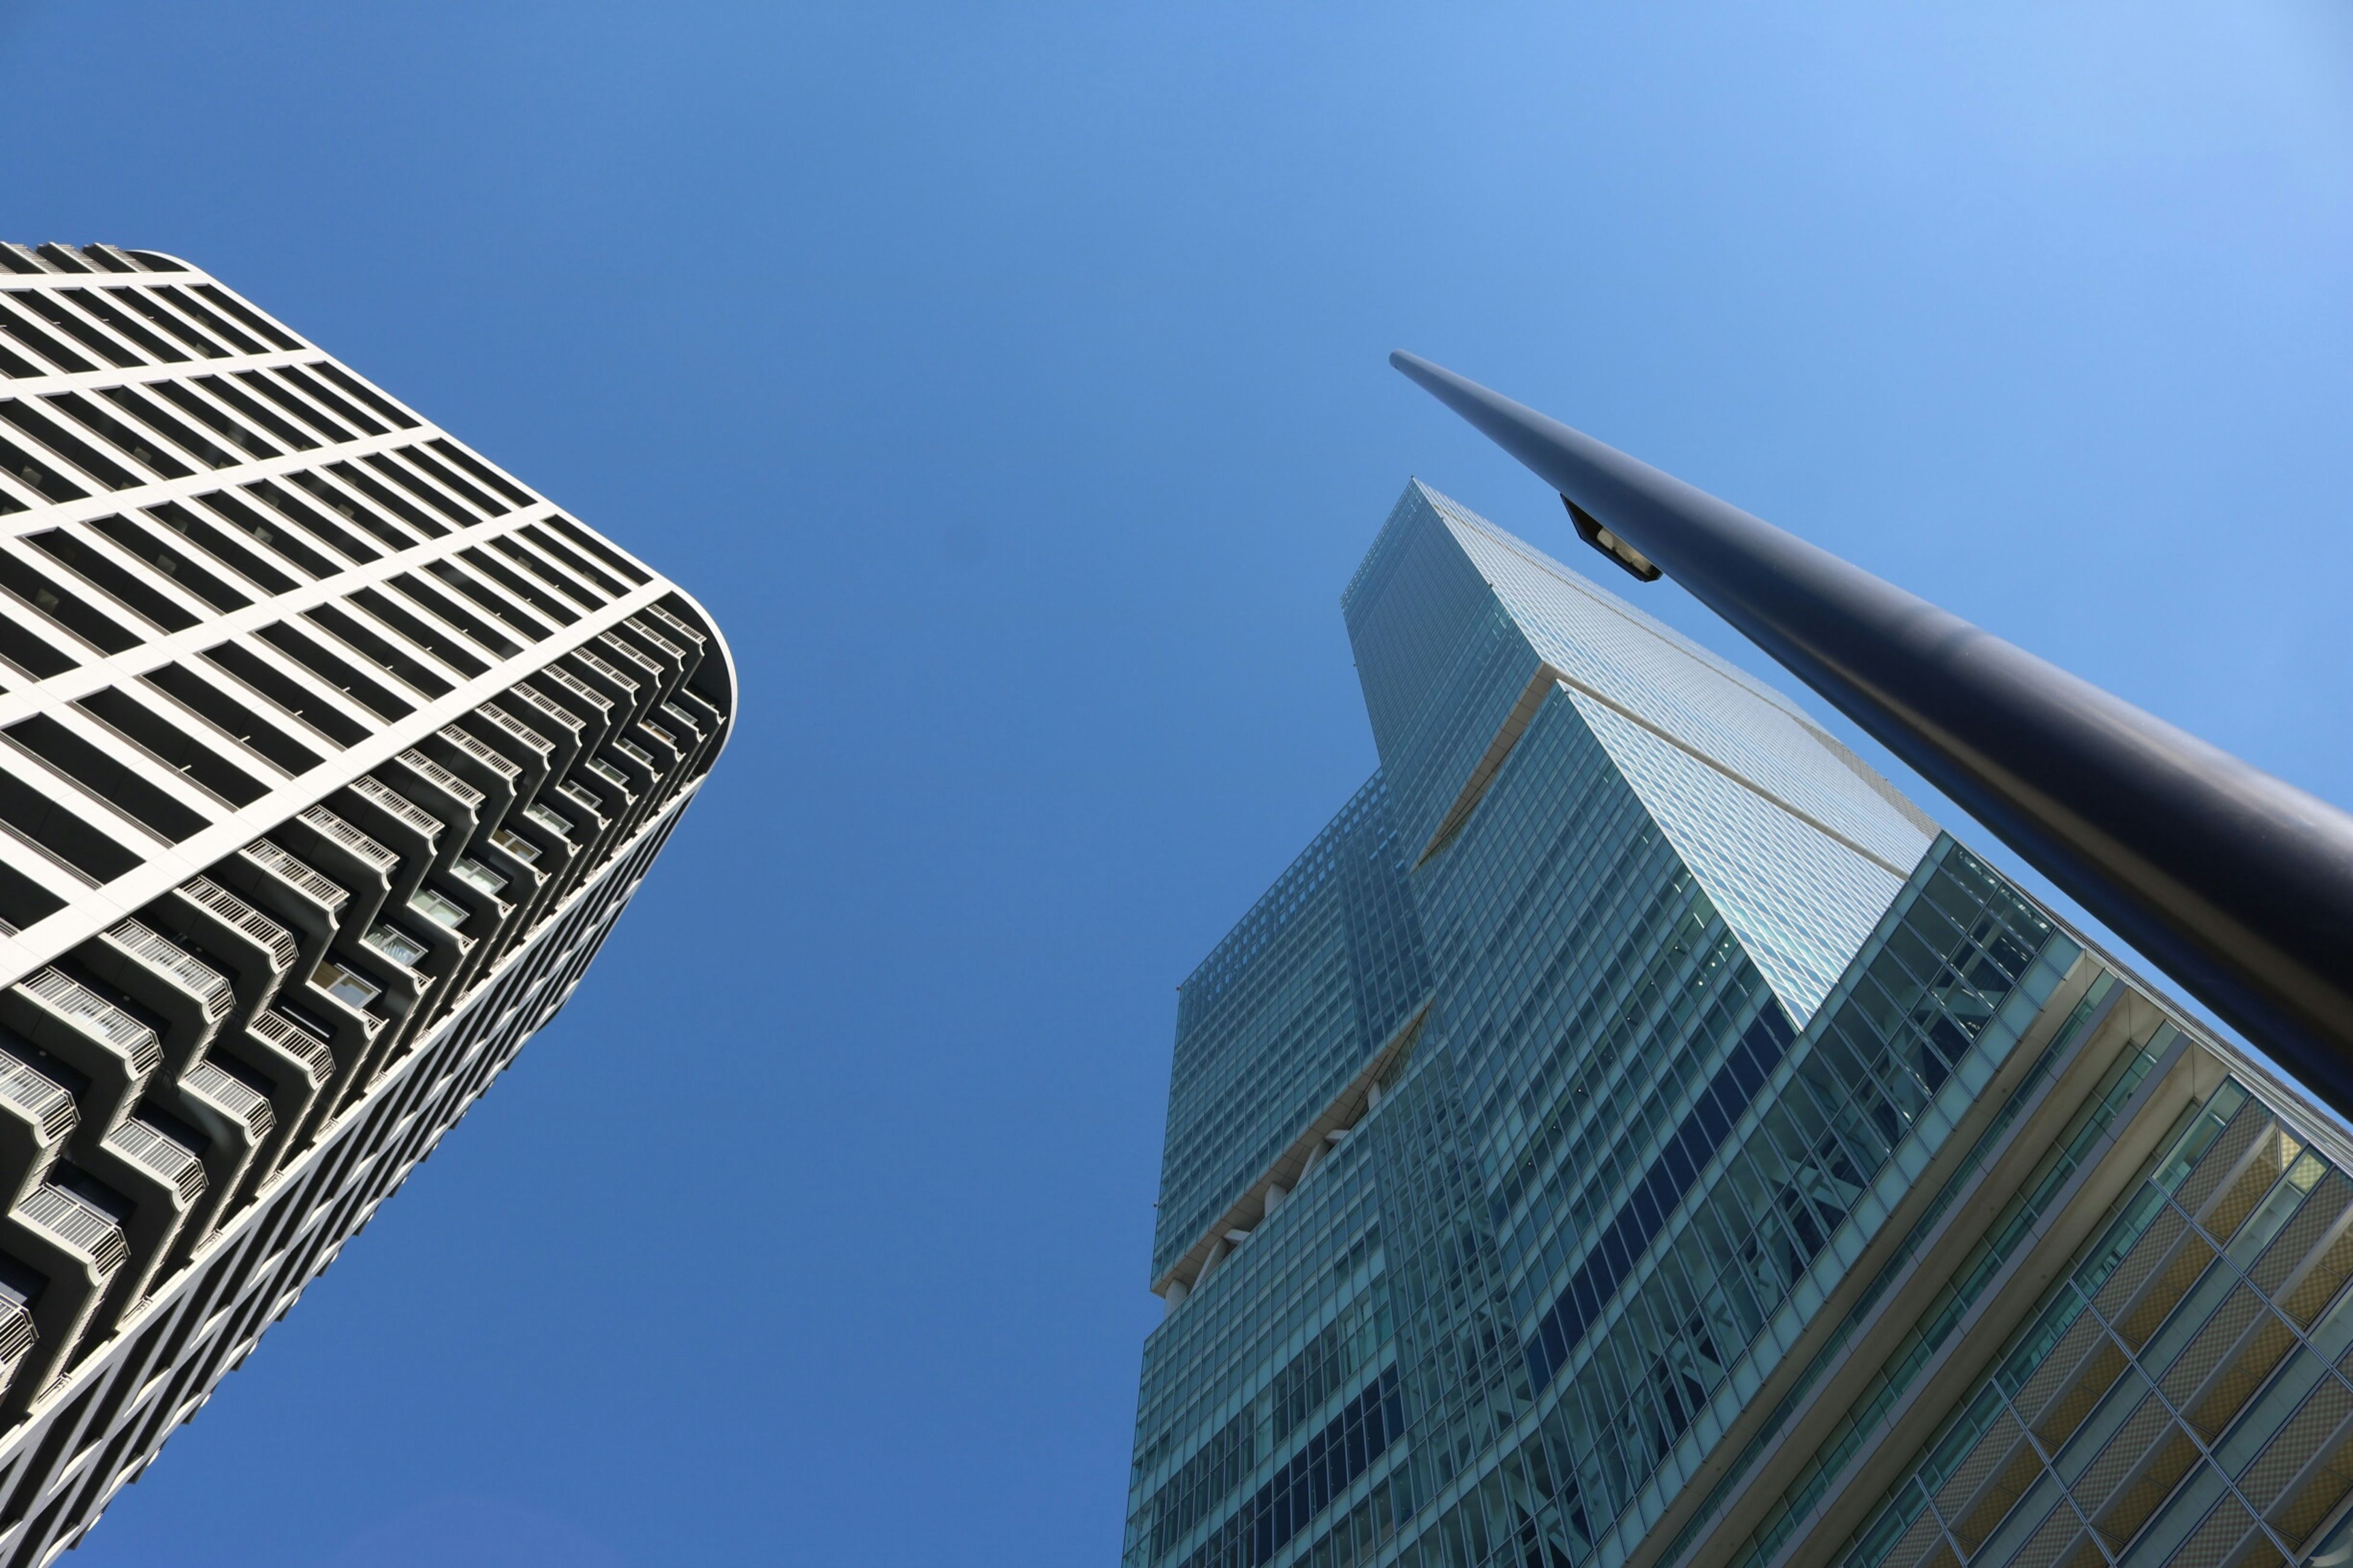 low angle view, architecture, building exterior, built structure, clear sky, tall - high, tower, skyscraper, modern, office building, city, blue, copy space, building, tall, directly below, day, glass - material, outdoors, no people